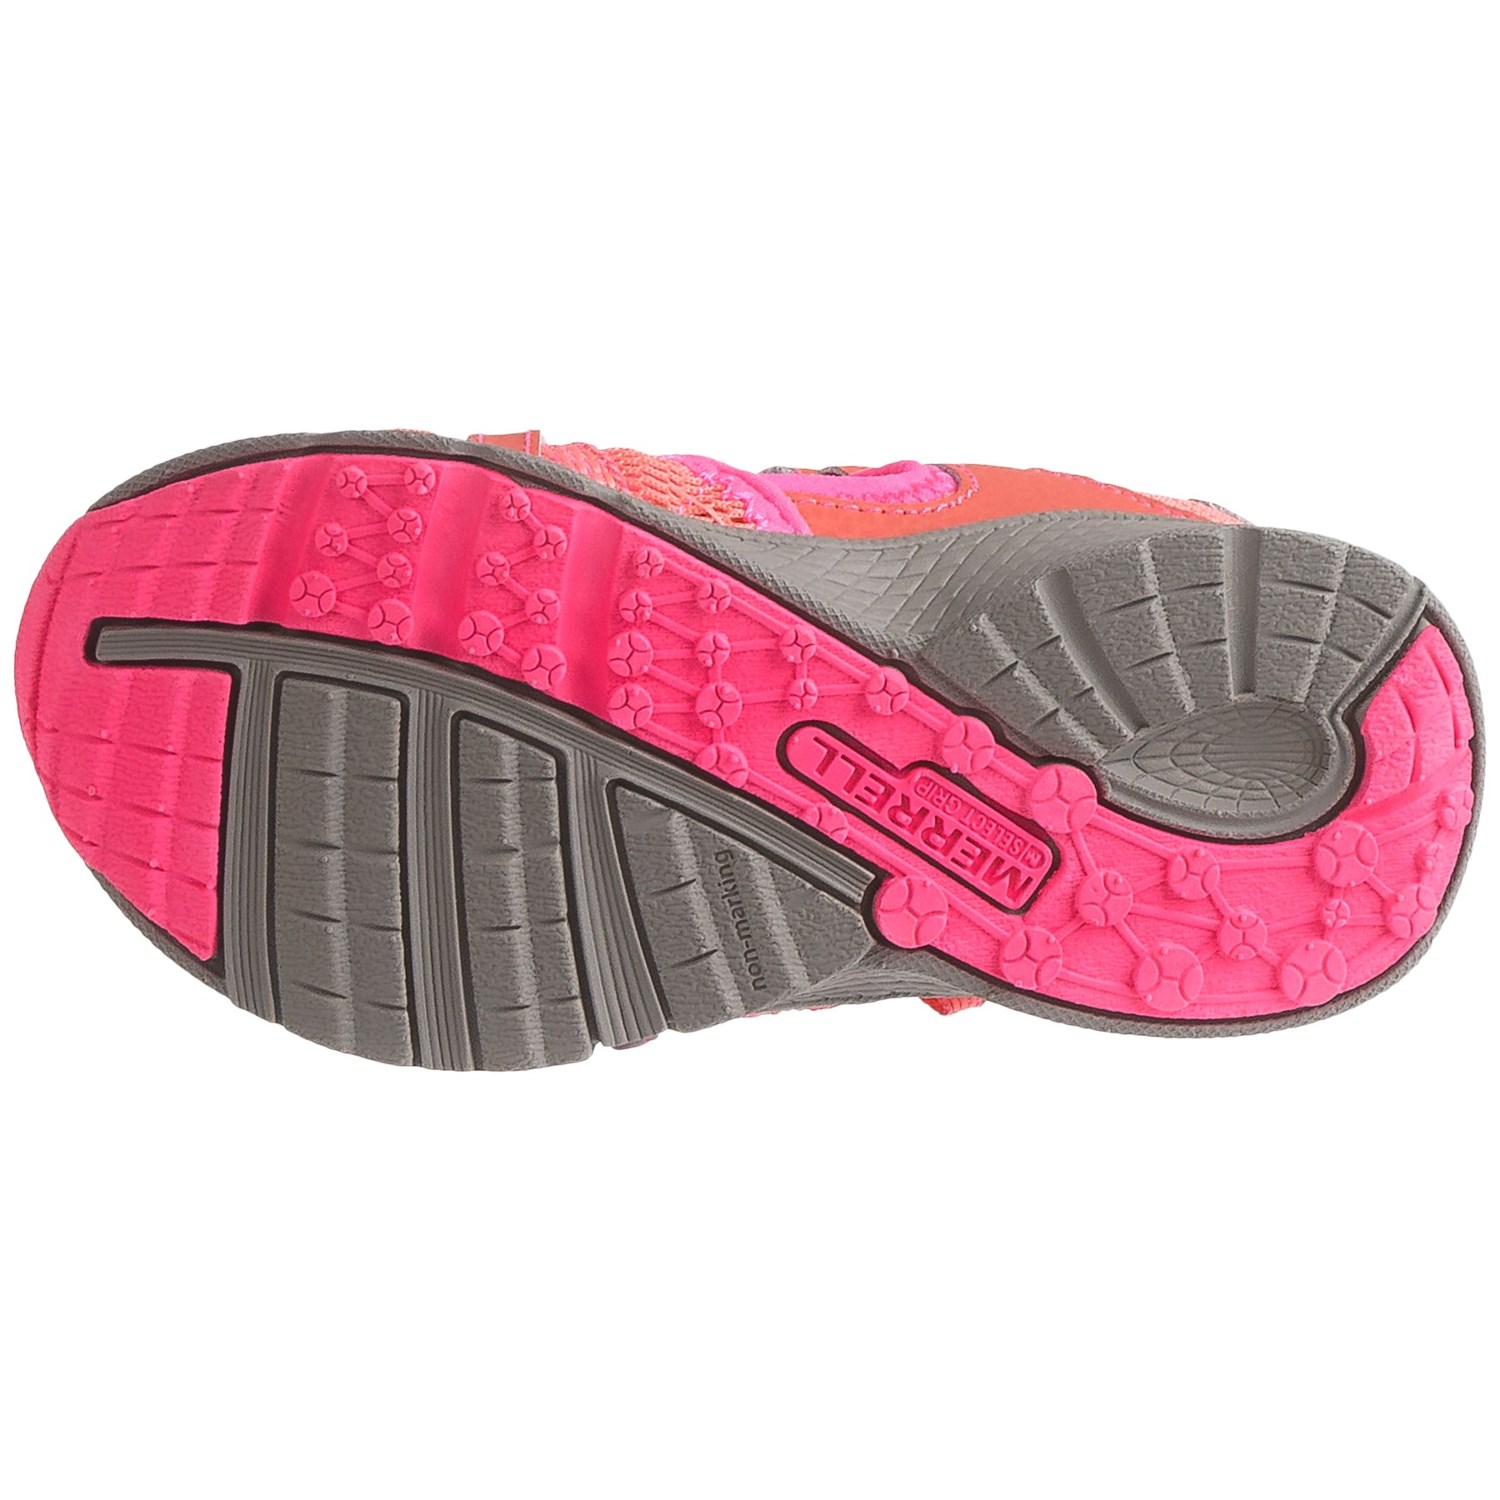 e71ccc939cc5 Merrell Hydro Monarch Junior Water Sandals - Leather and Mesh (For Little  and Big Girls)